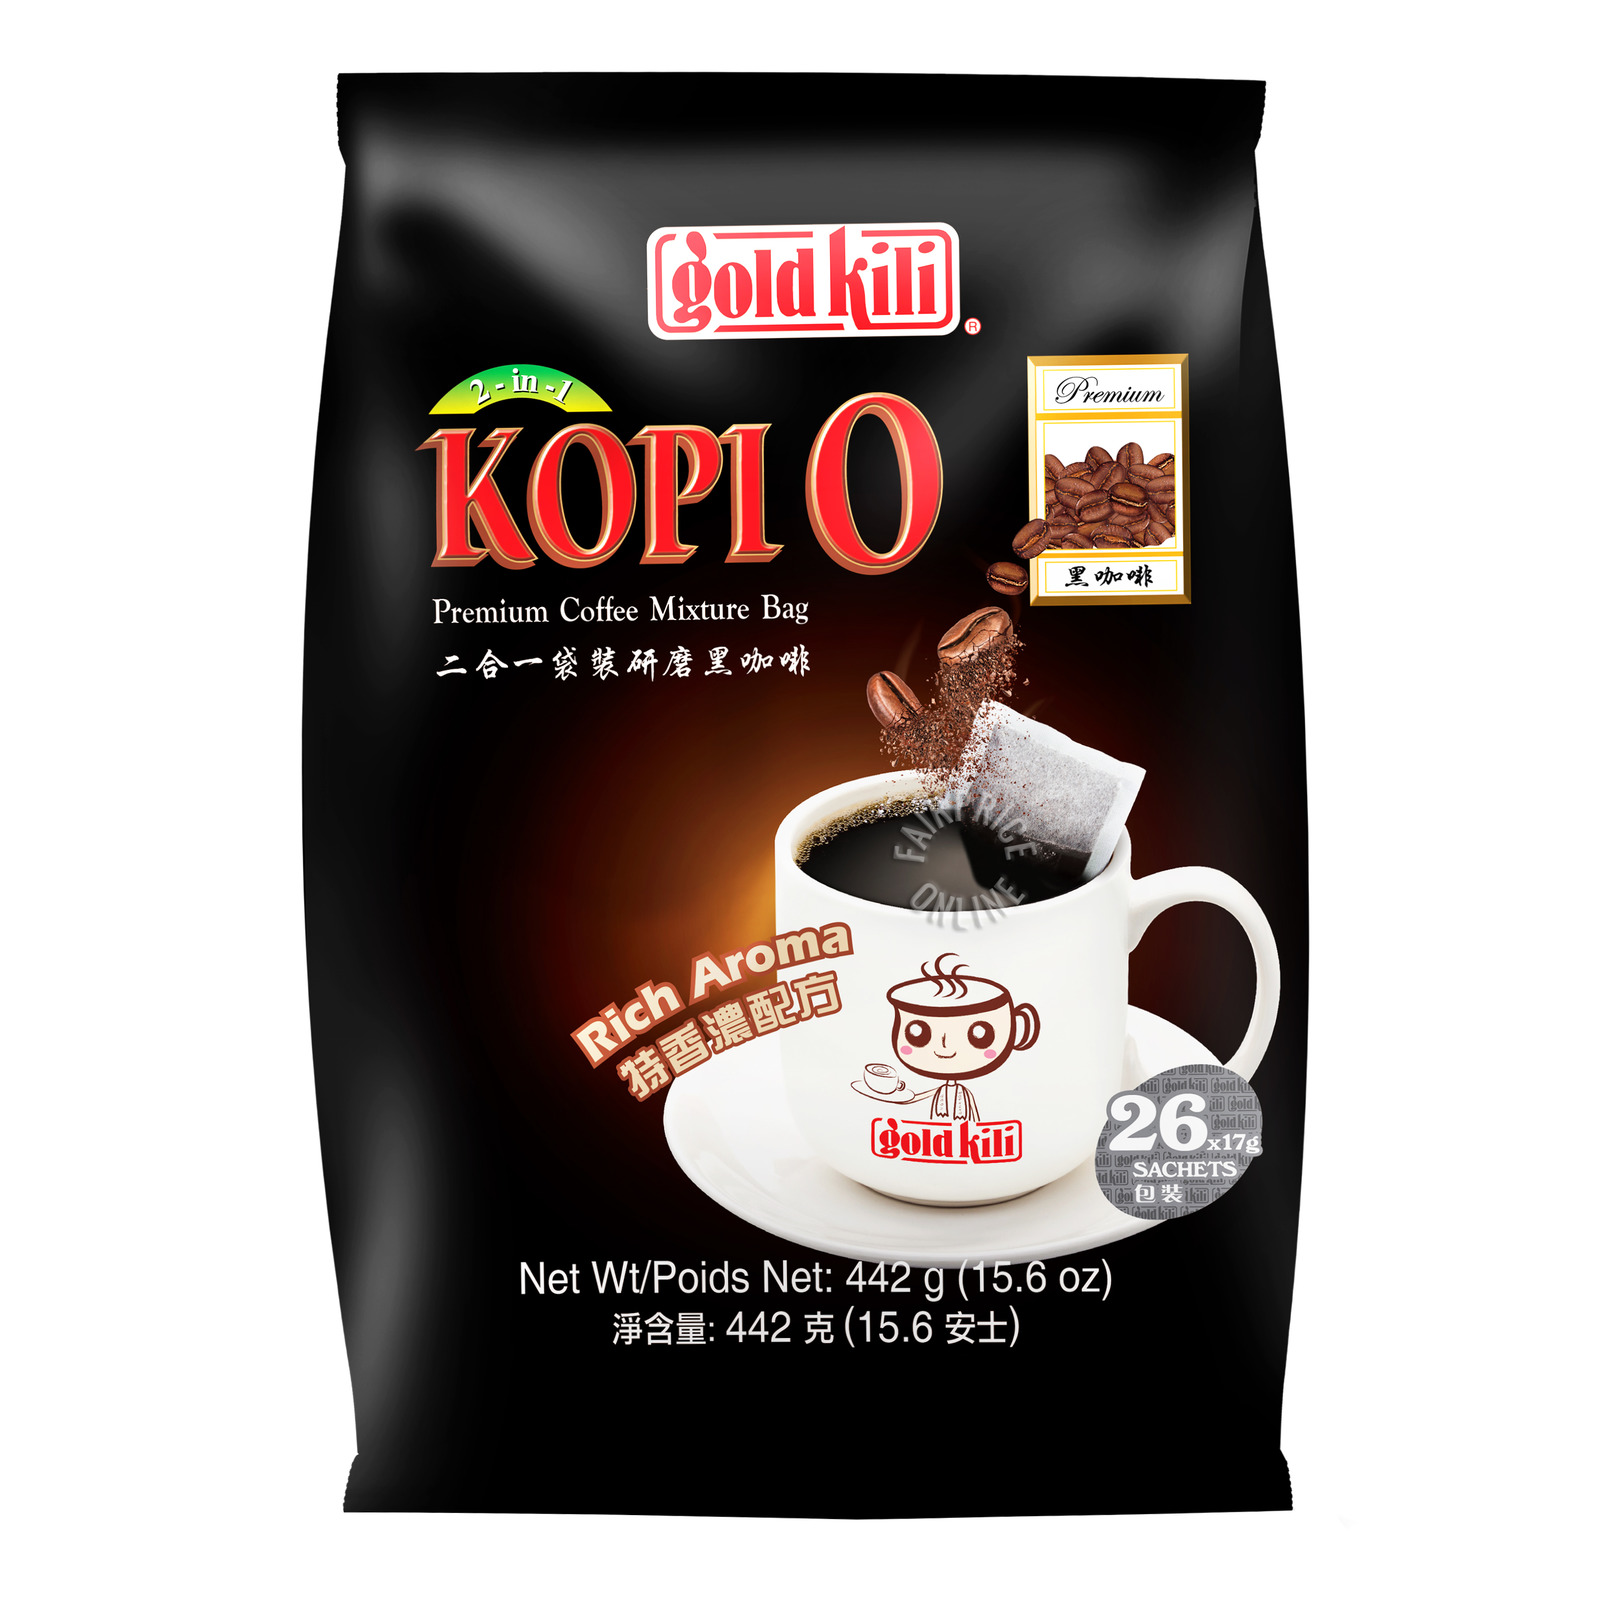 Gold Kili 2 in 1 Instant Premium Kopi O - Sugar Added